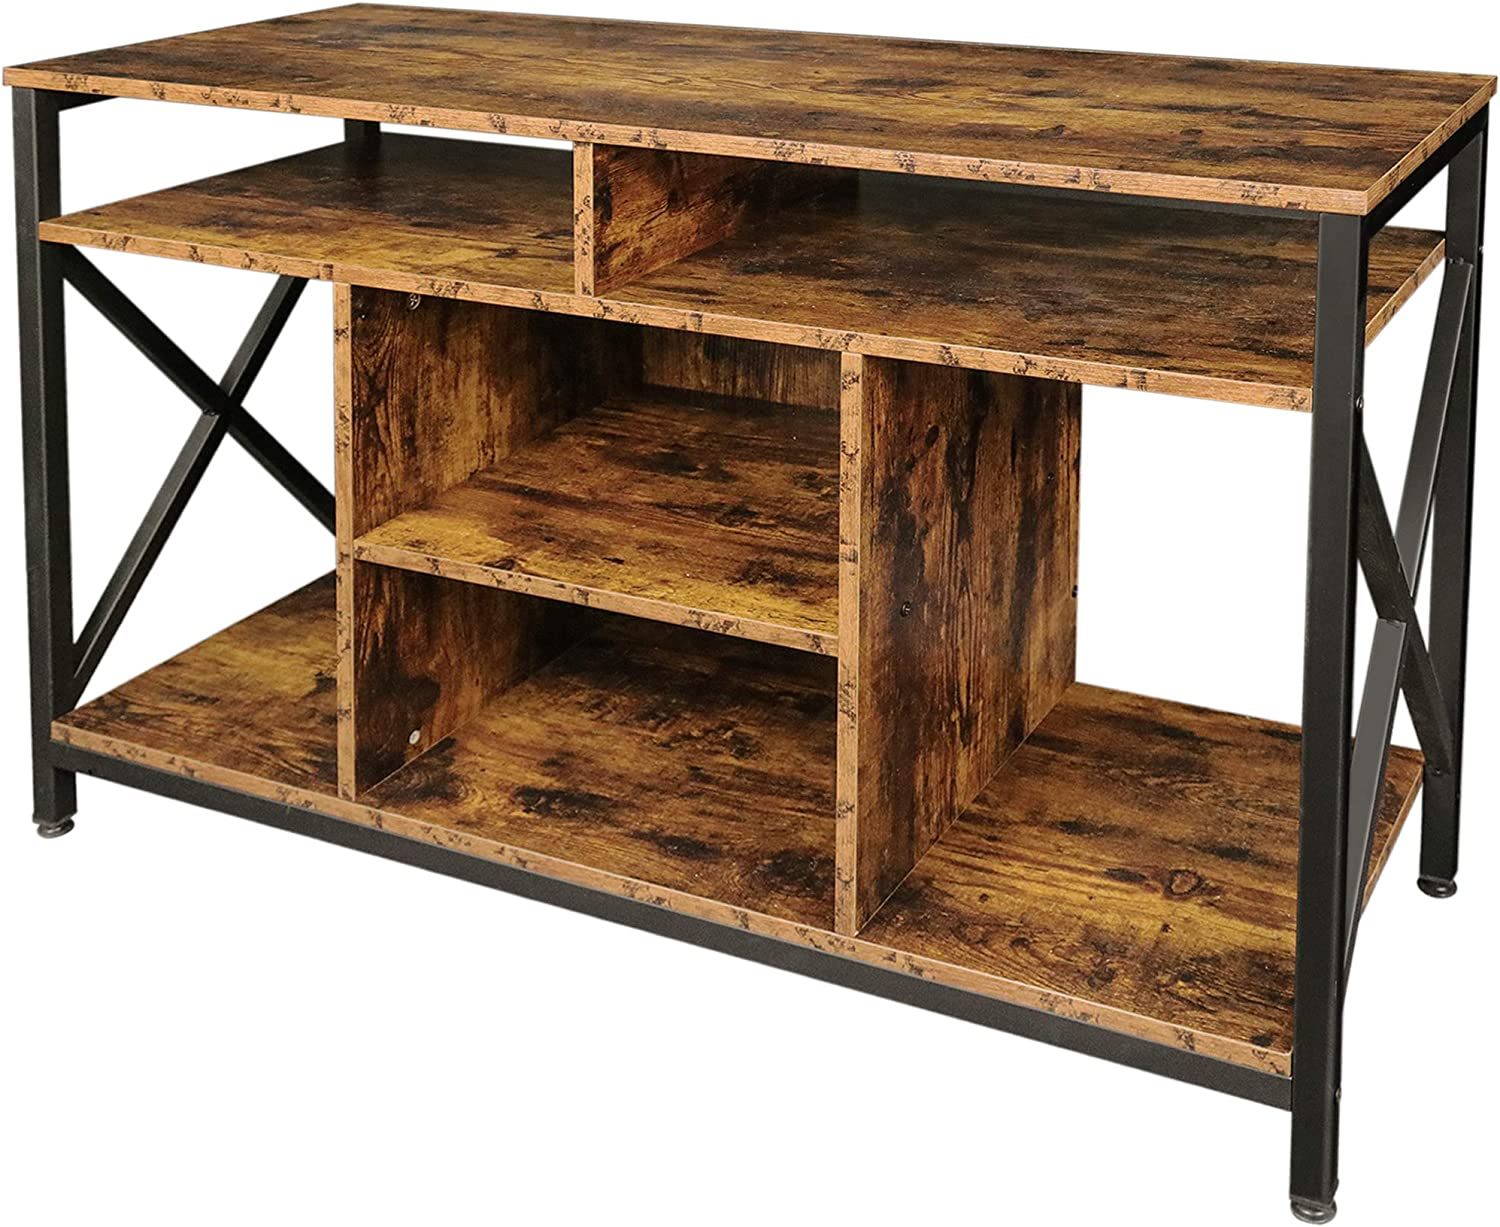 Becko US Farmhouse TV Stand TV Console Table with Storage Shelves for TVs up to 50